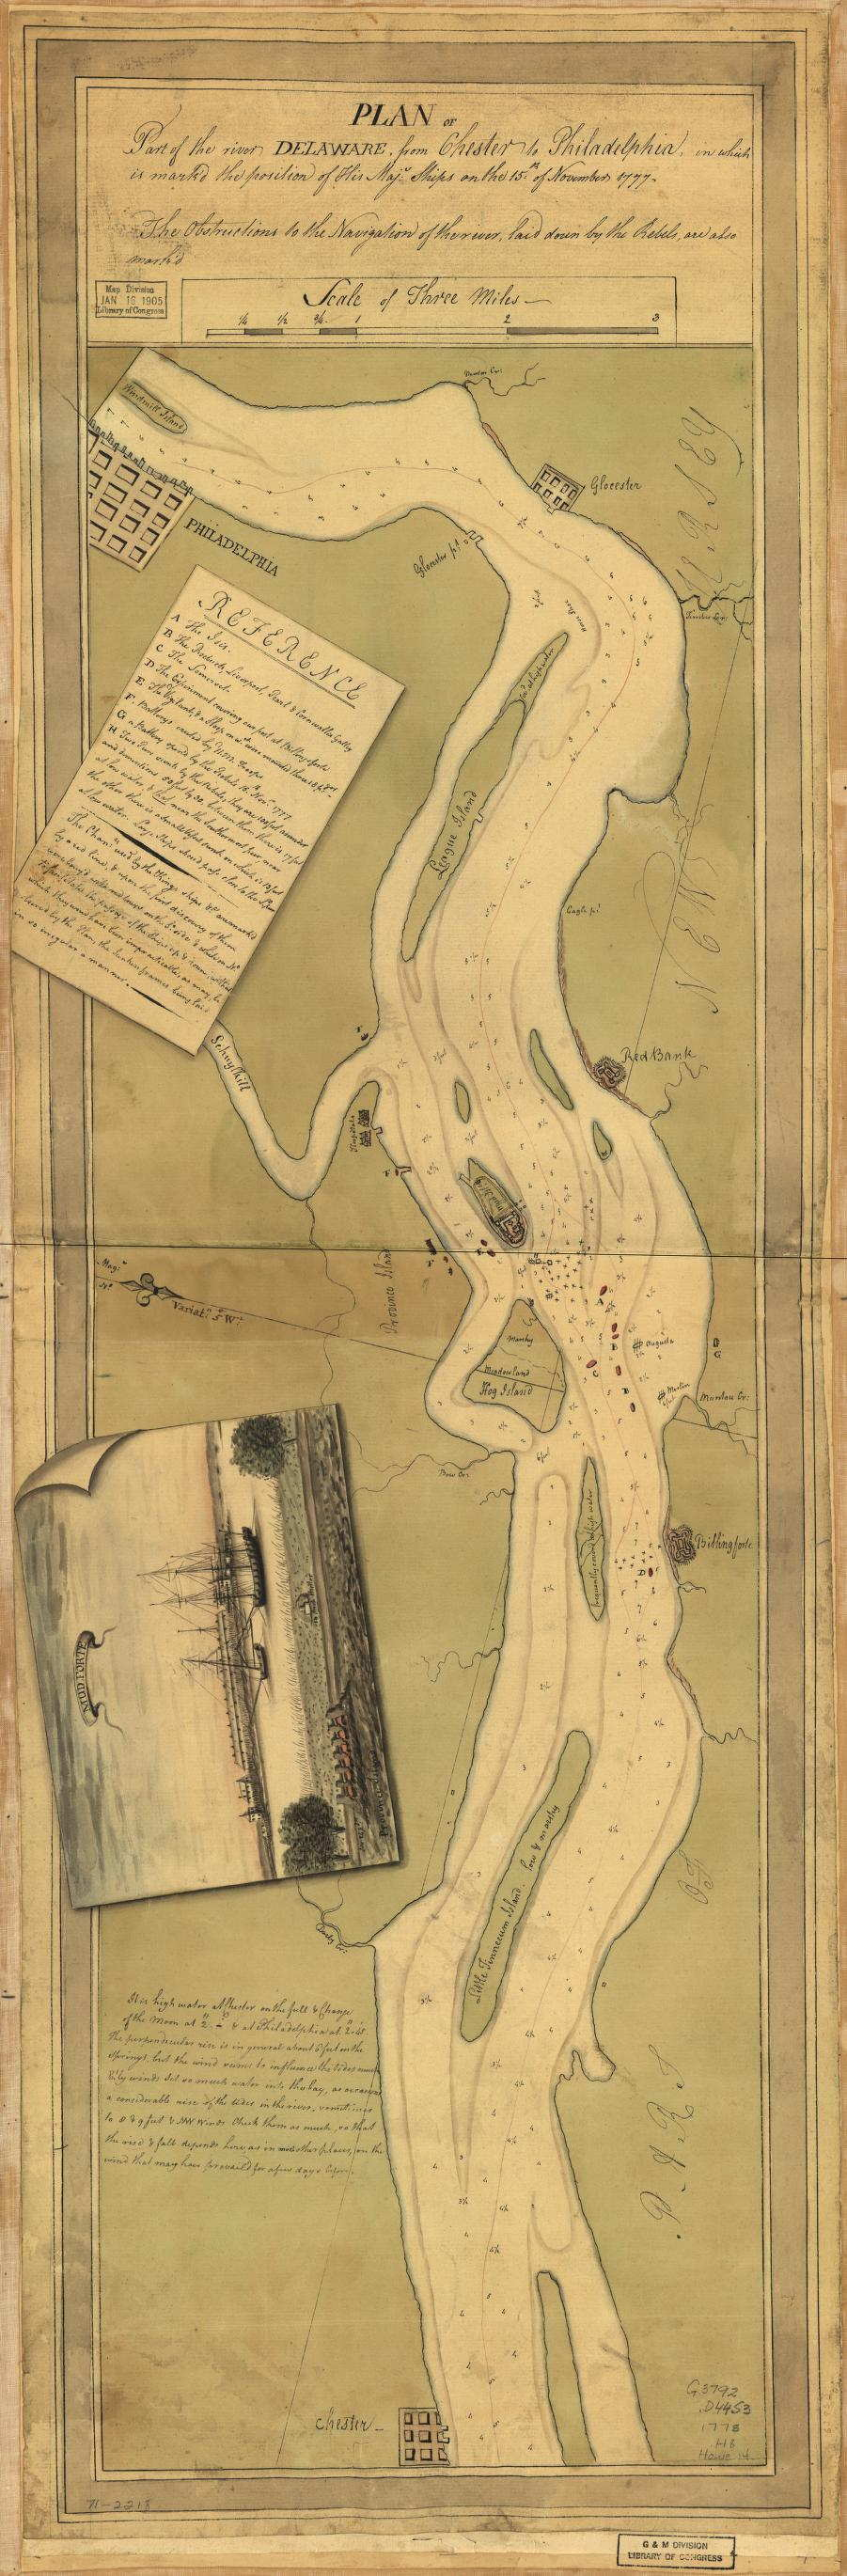 177826 PLAN OF PART OF THE RIVER